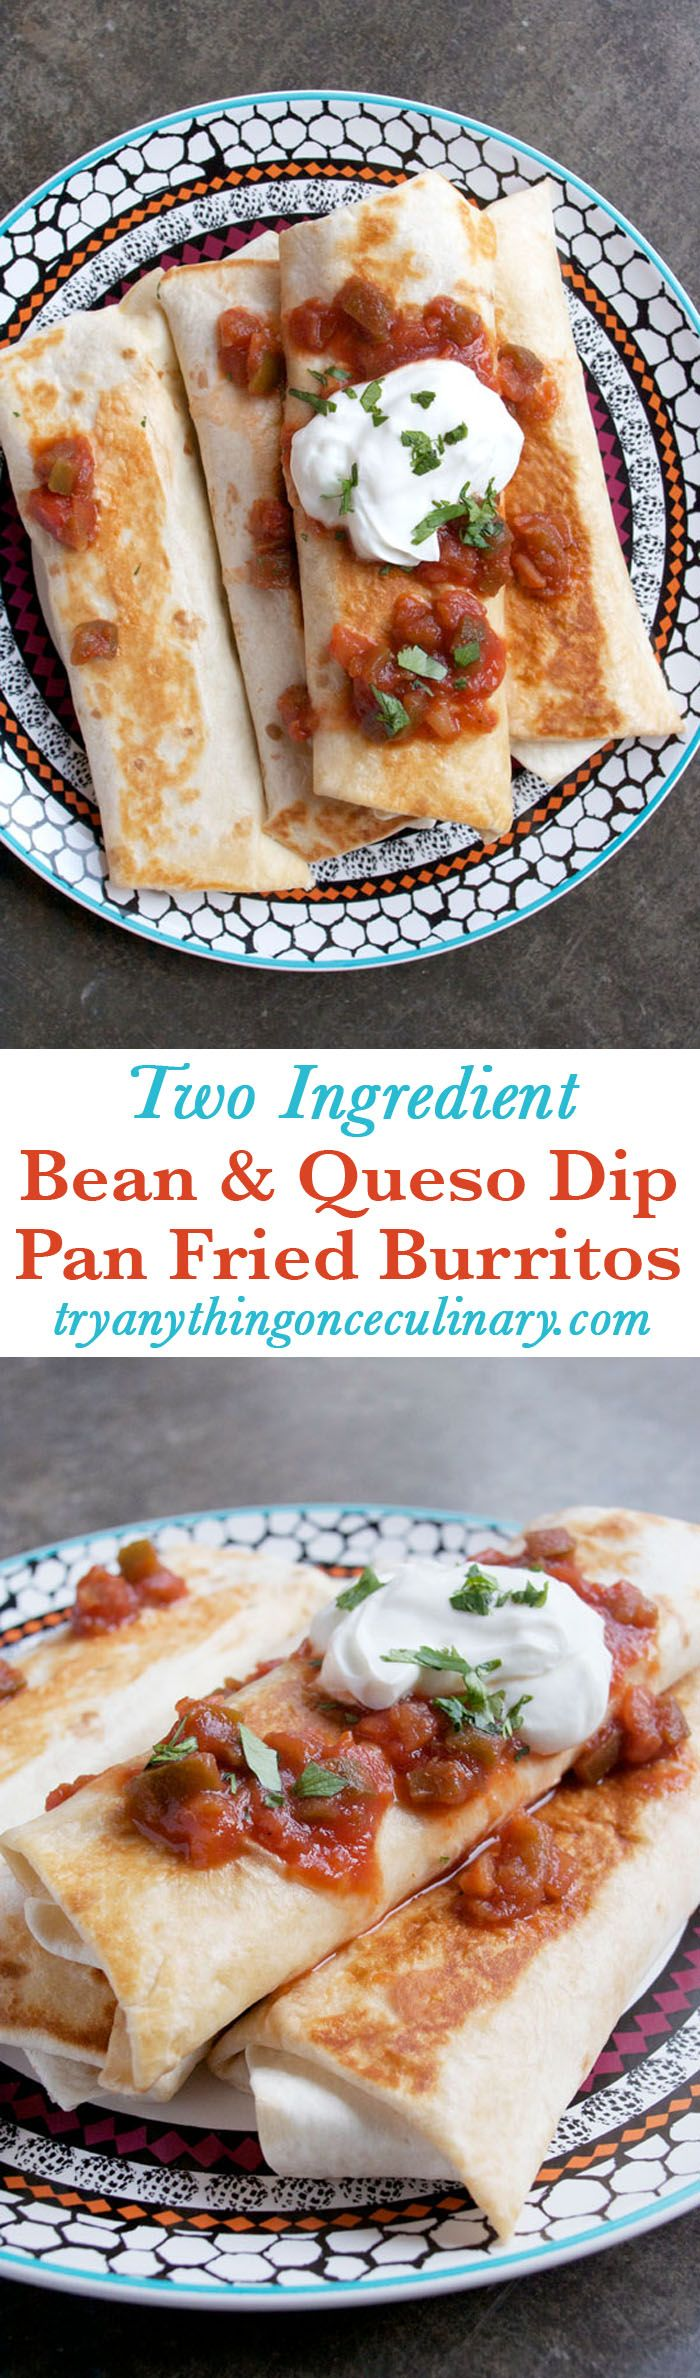 For a quick weeknight dinner recipe, make Two Ingredient Bean and Queso Dip Pan Fried Burritos from tryanythingonceculinary.com. The sides are crisp and the filling only has two ingredients, making this perfect for busy nights!